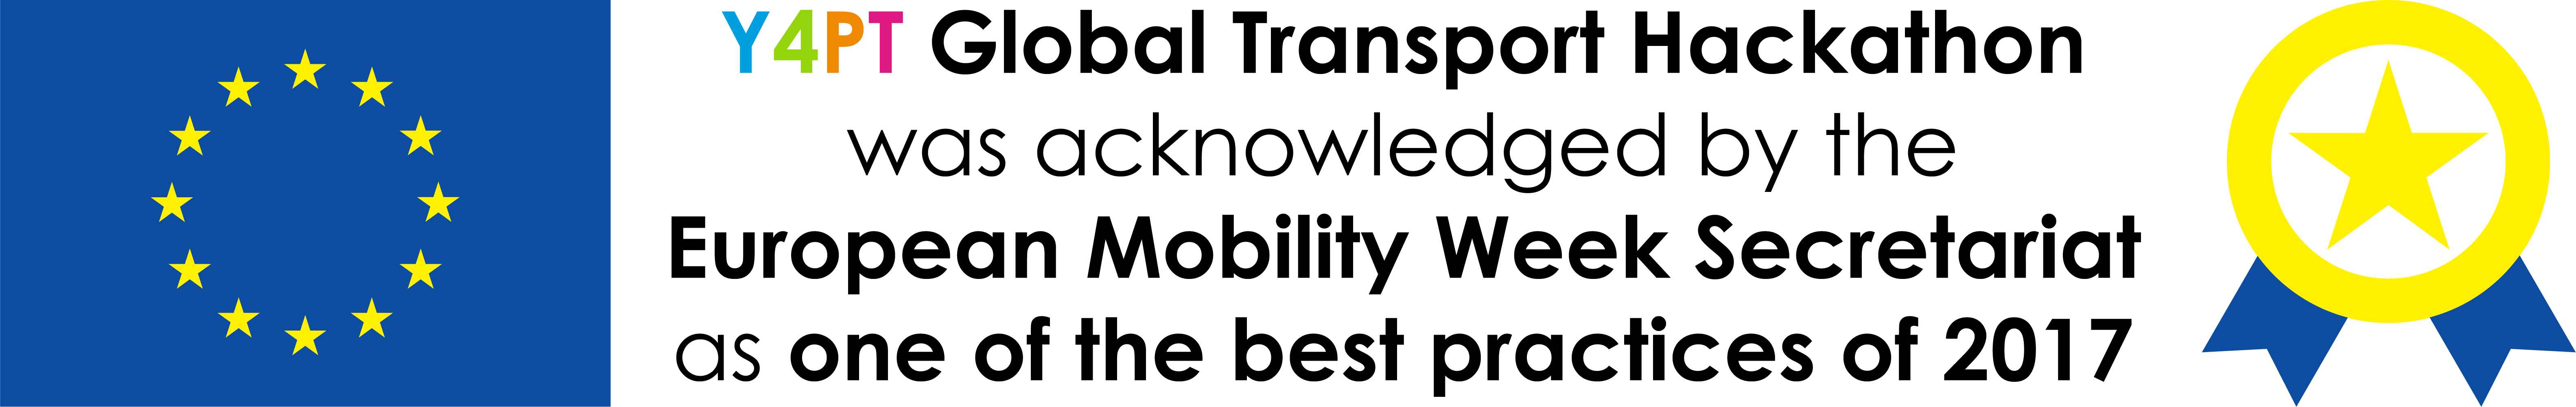 Y4PT Global Transport Hackathon series was acknowledged by the European Mobility Week Secretariat as one of the best practices of 2017